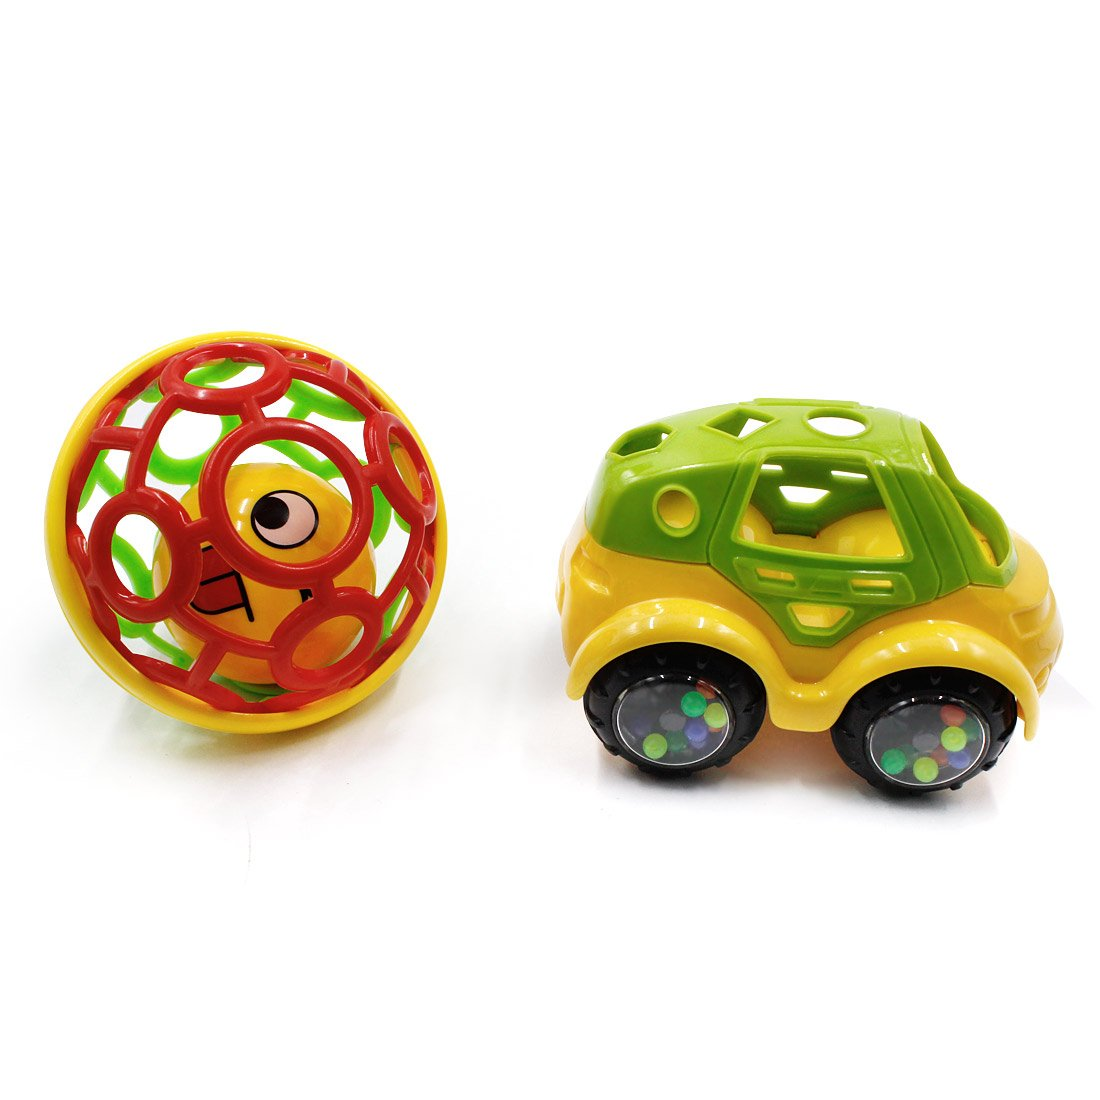 BEIHUI Baby Infant Rattle Roll Teething Ball Car Toys Soft Rattles Teethers Toddler Play Toy Car Newborn Bendy Ball Toy For 3 Months, 2 Pack